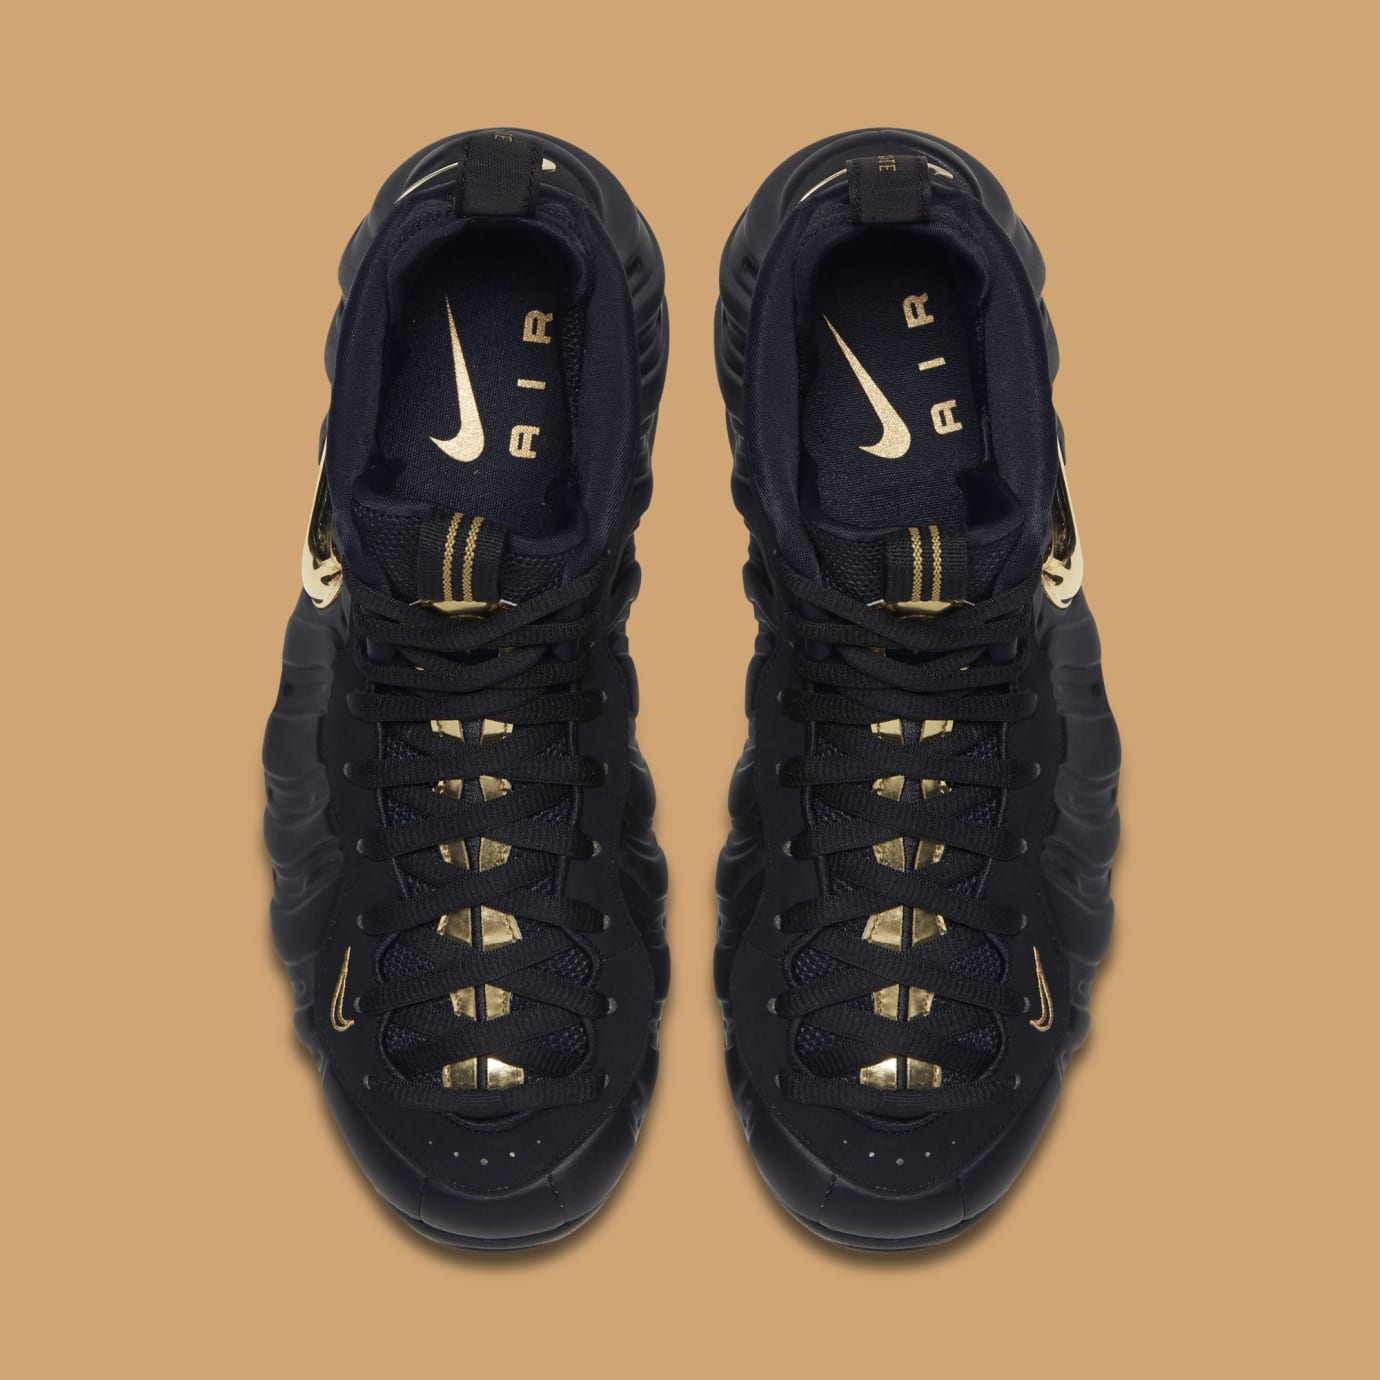 new concept 2d672 74c14 Image via Nike Nike Air Foamposite Pro  Black Metallic Gold  624041-009  (Top)